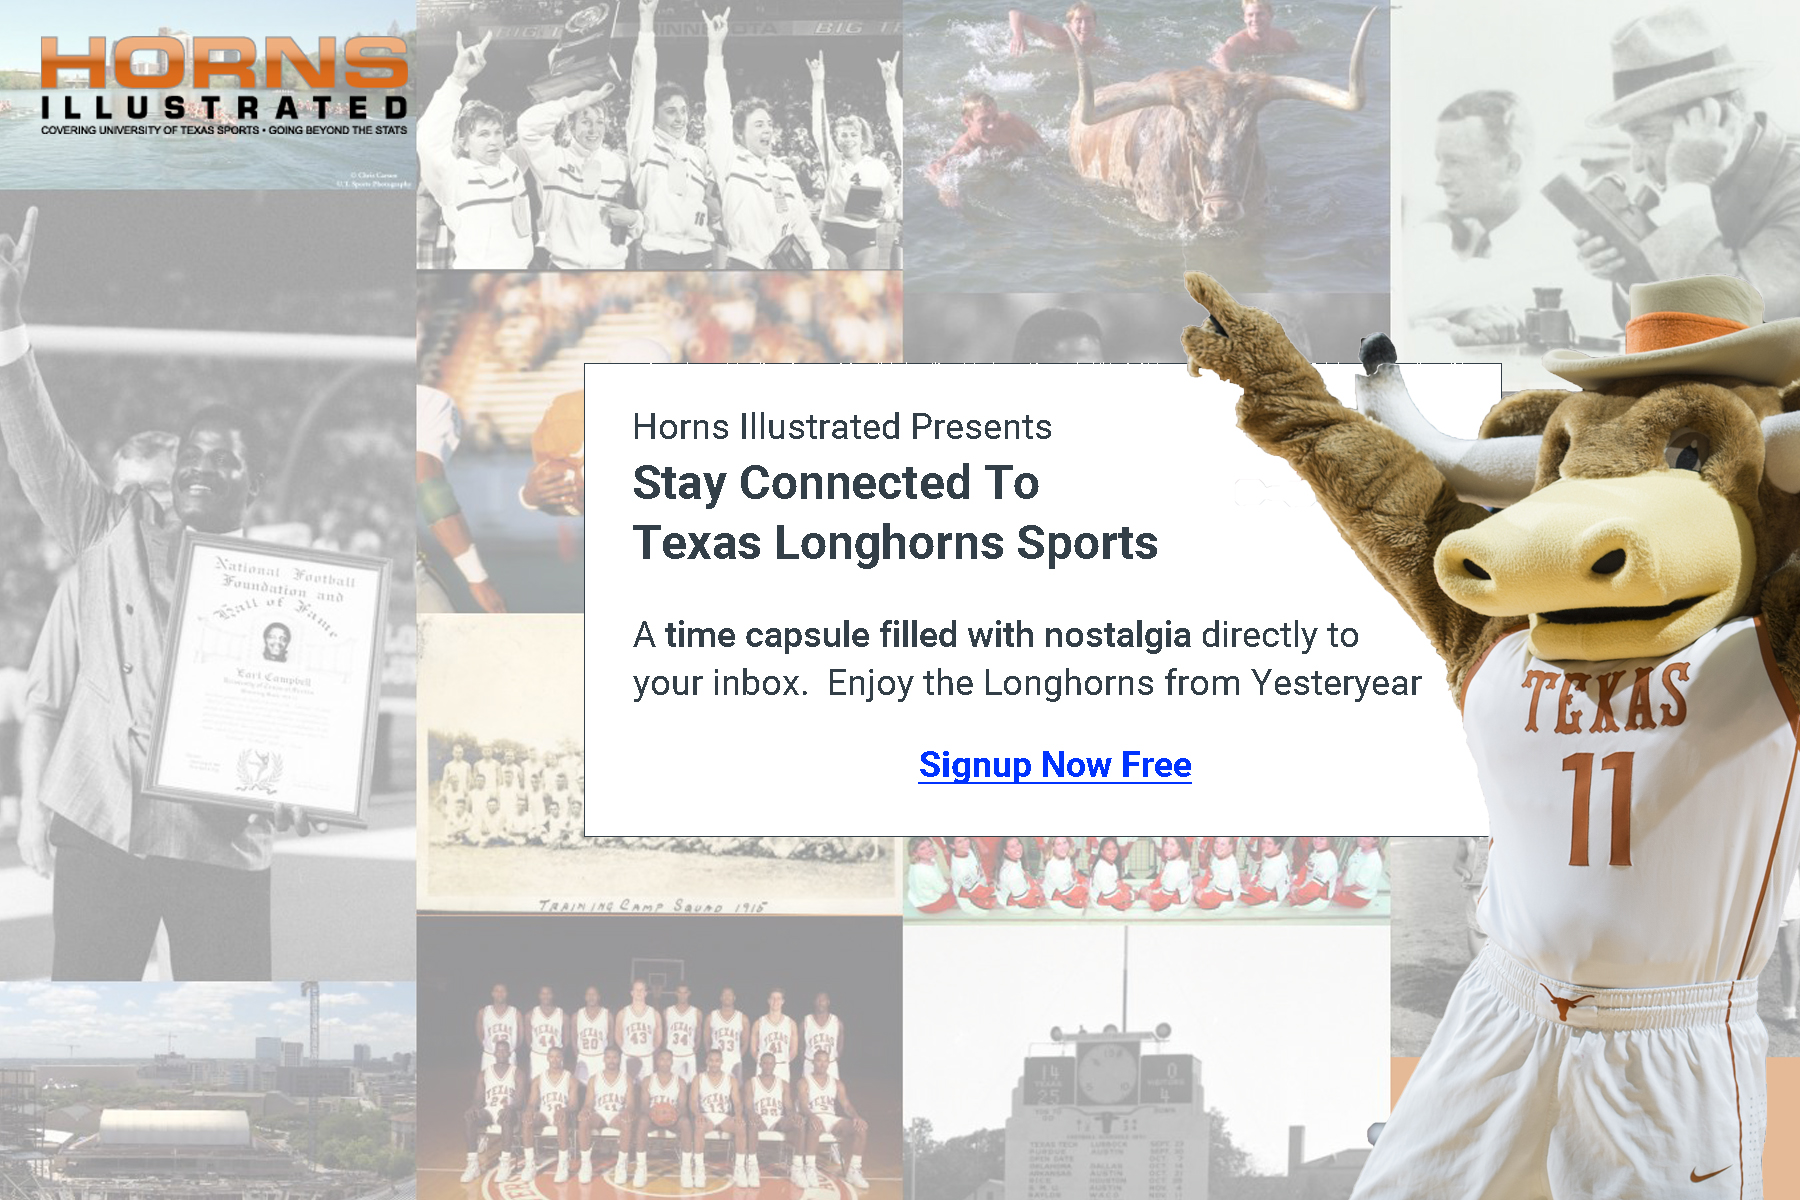 Texas Longhorns Sports Time Capsule